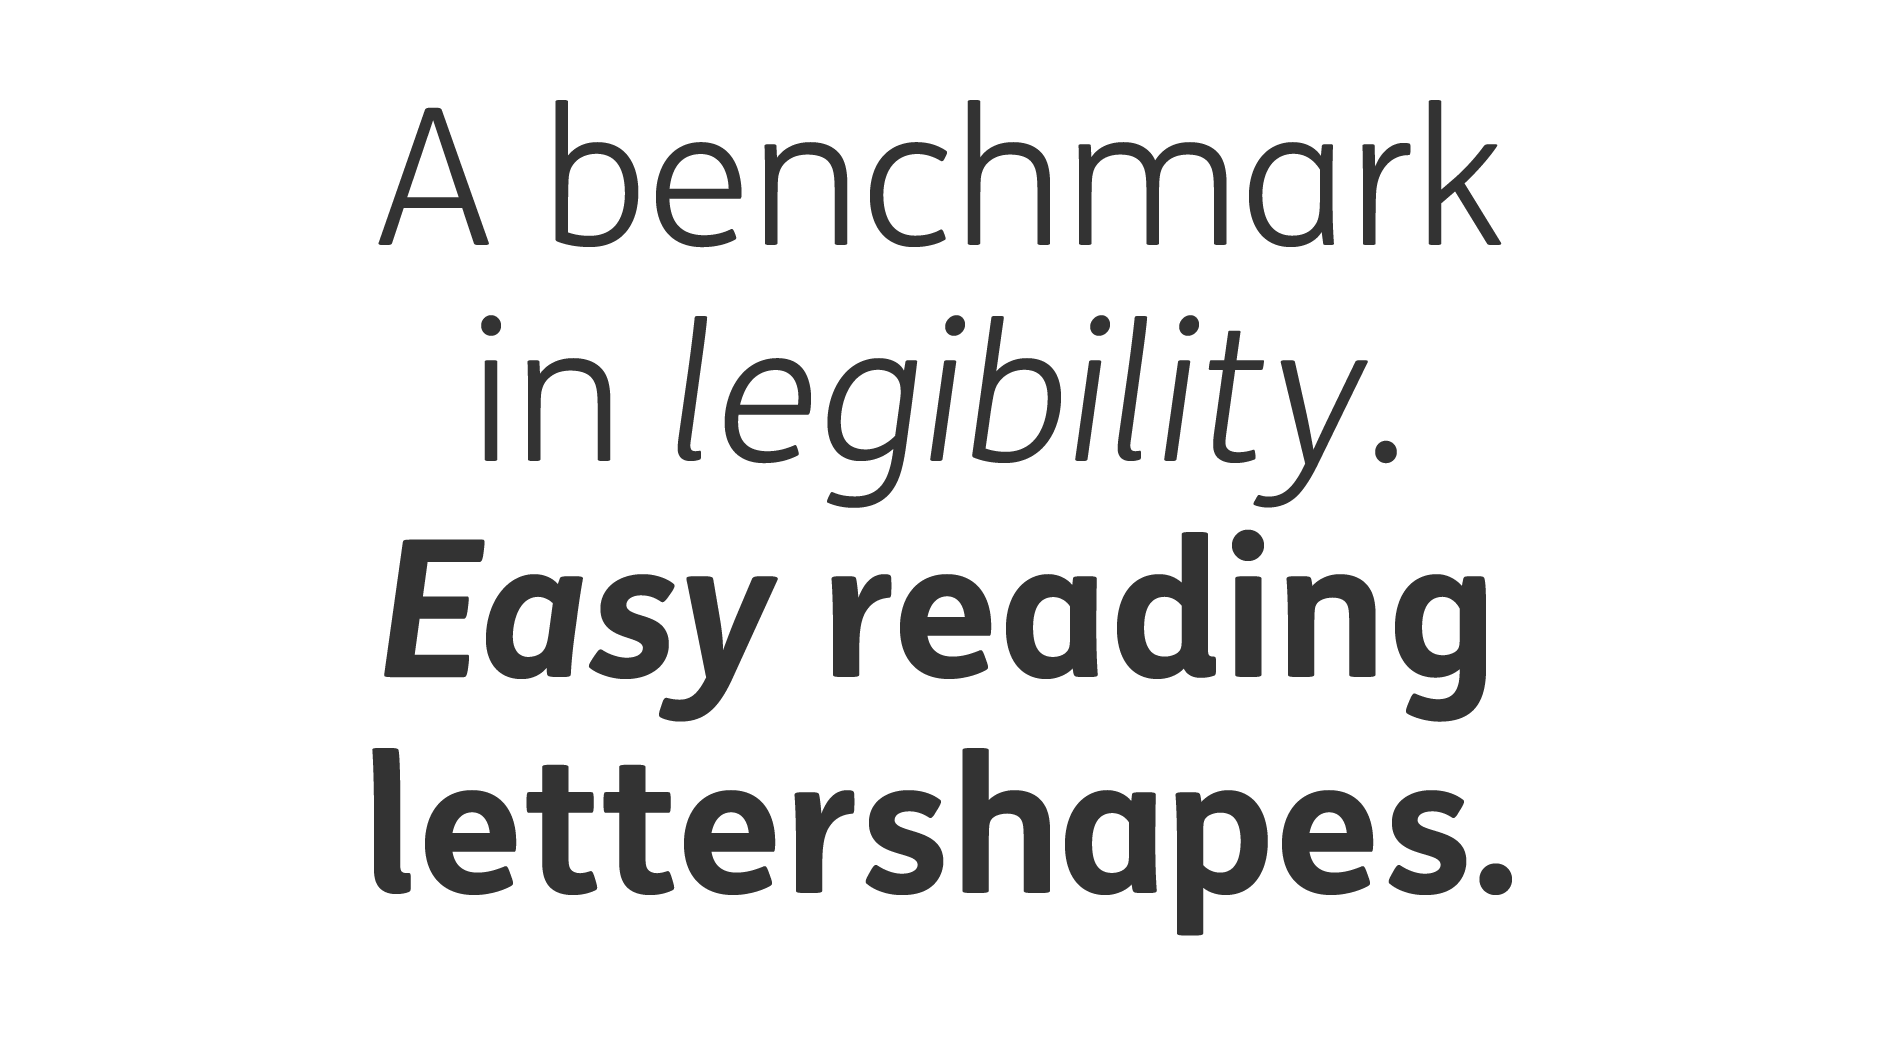 """""""A benchmark in legibility. Easy reading letter shapes."""" text in different FS Me font styles and weights."""